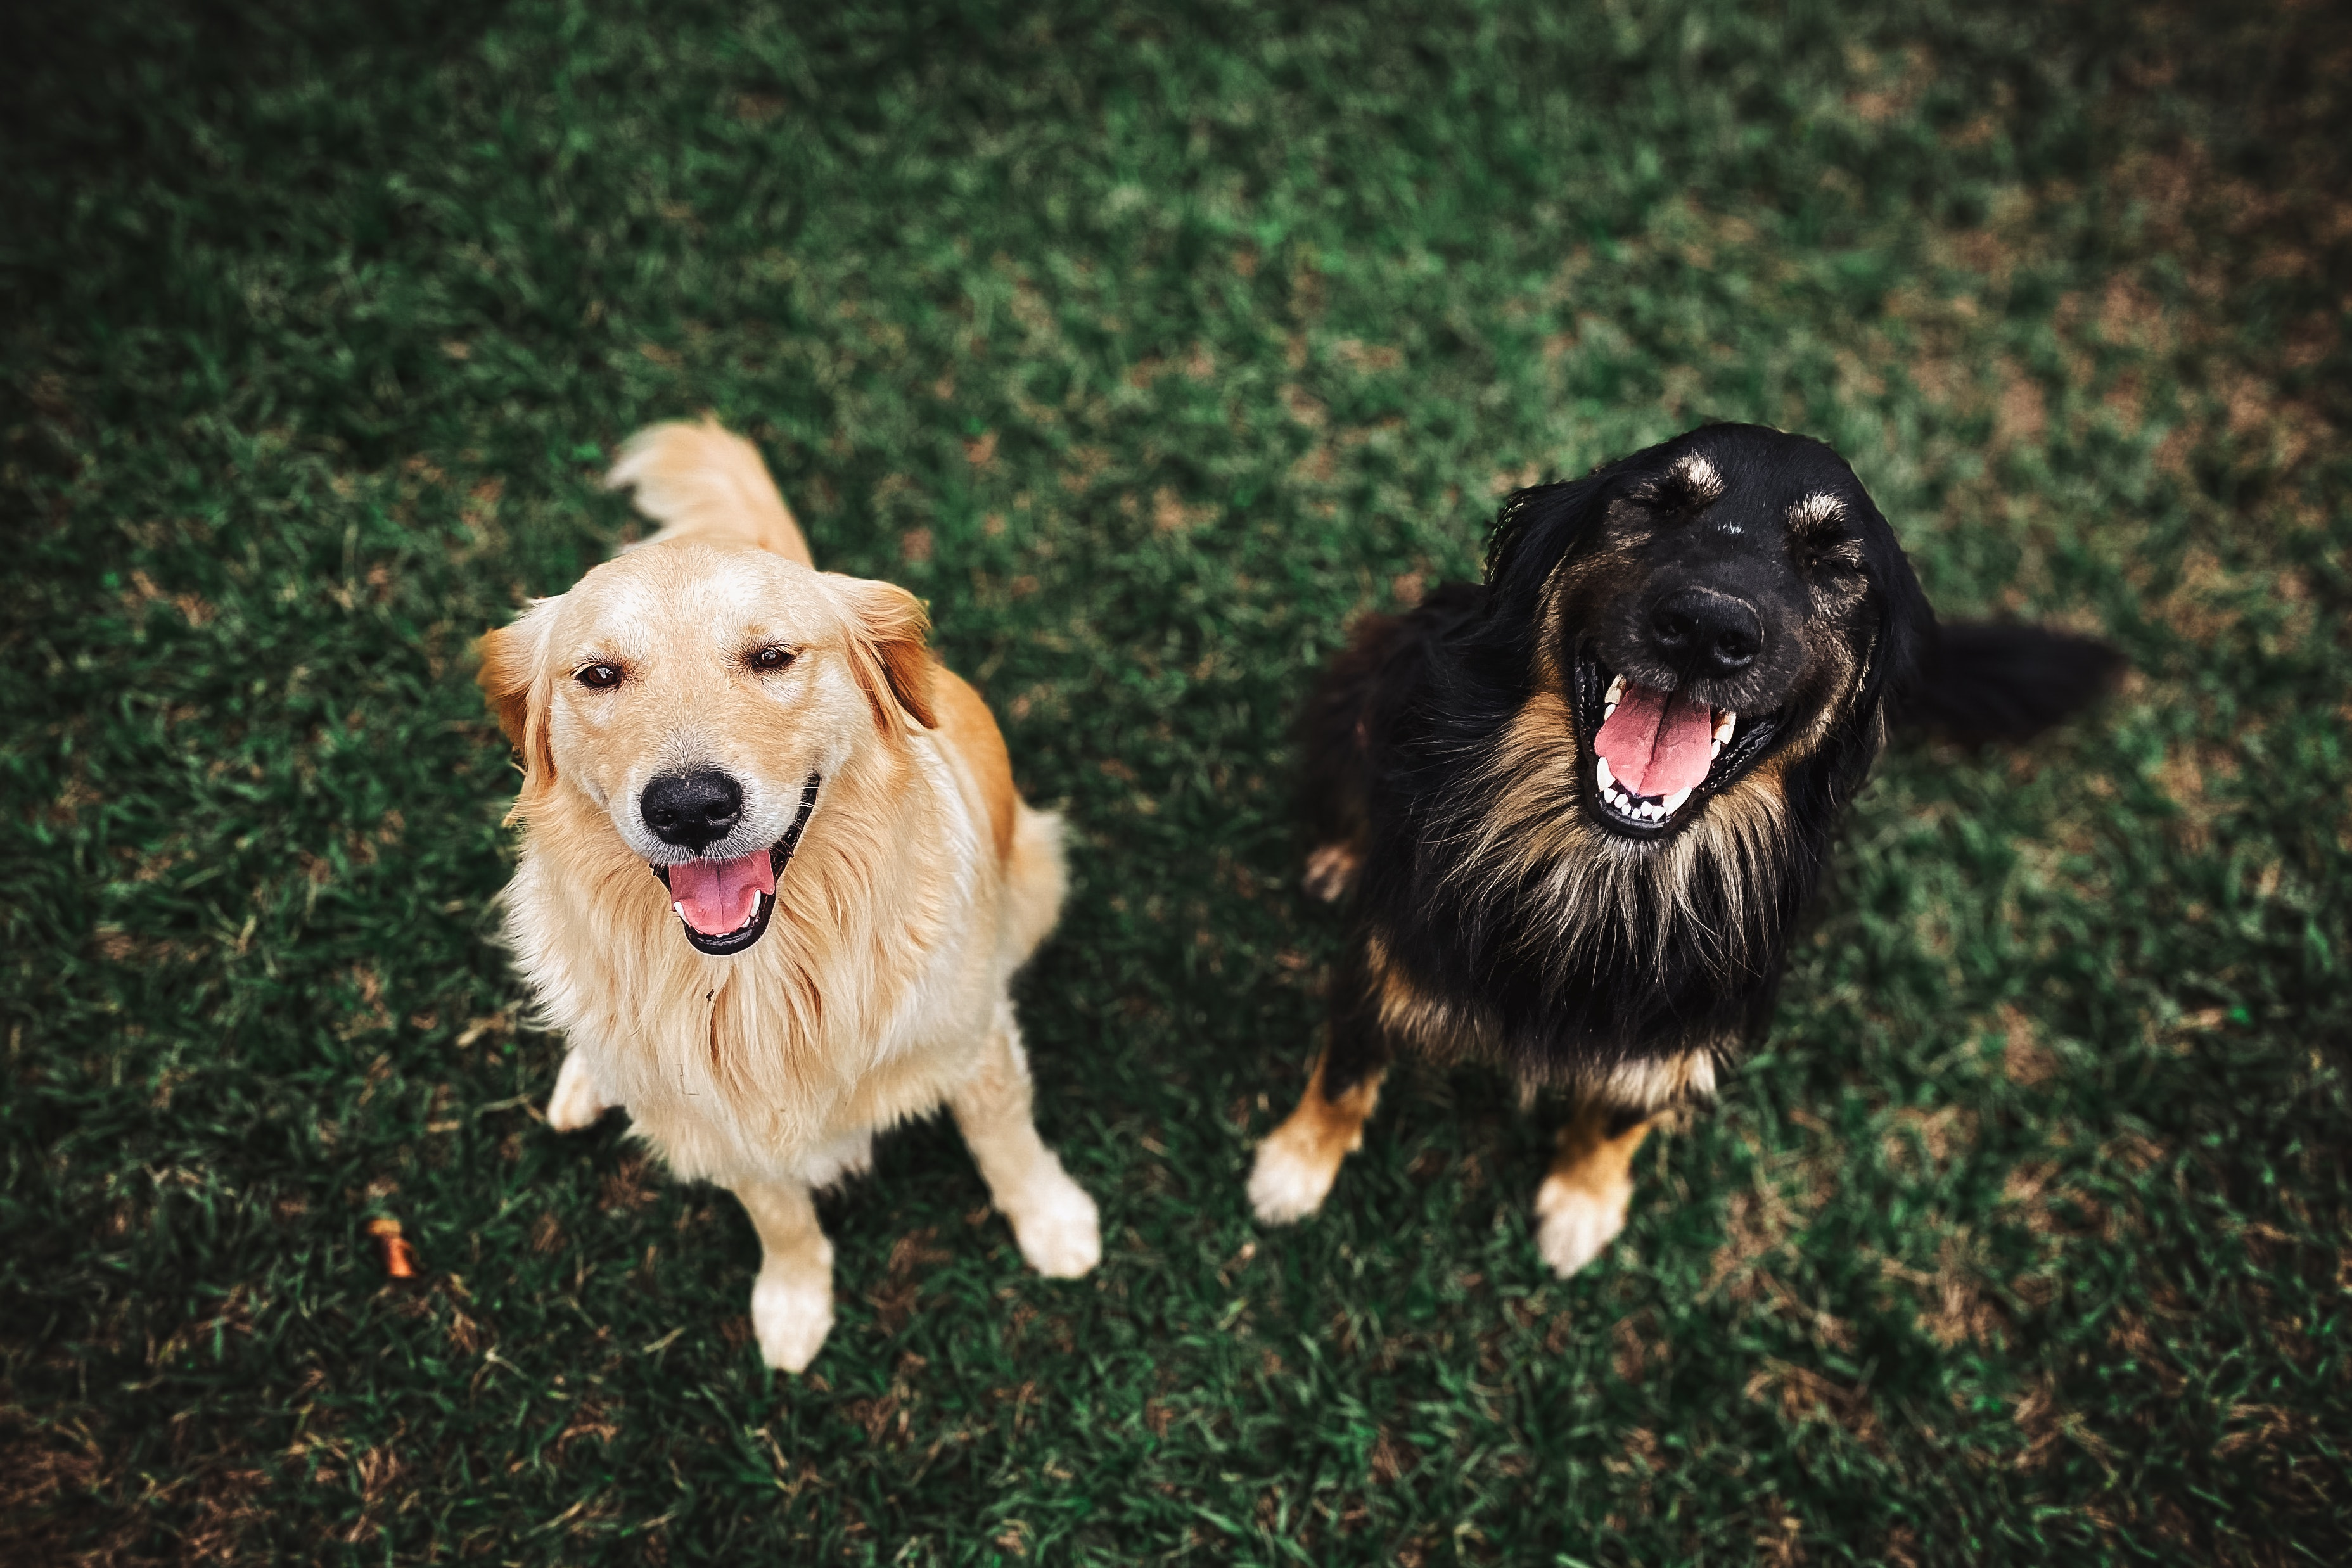 Two dogs smiling